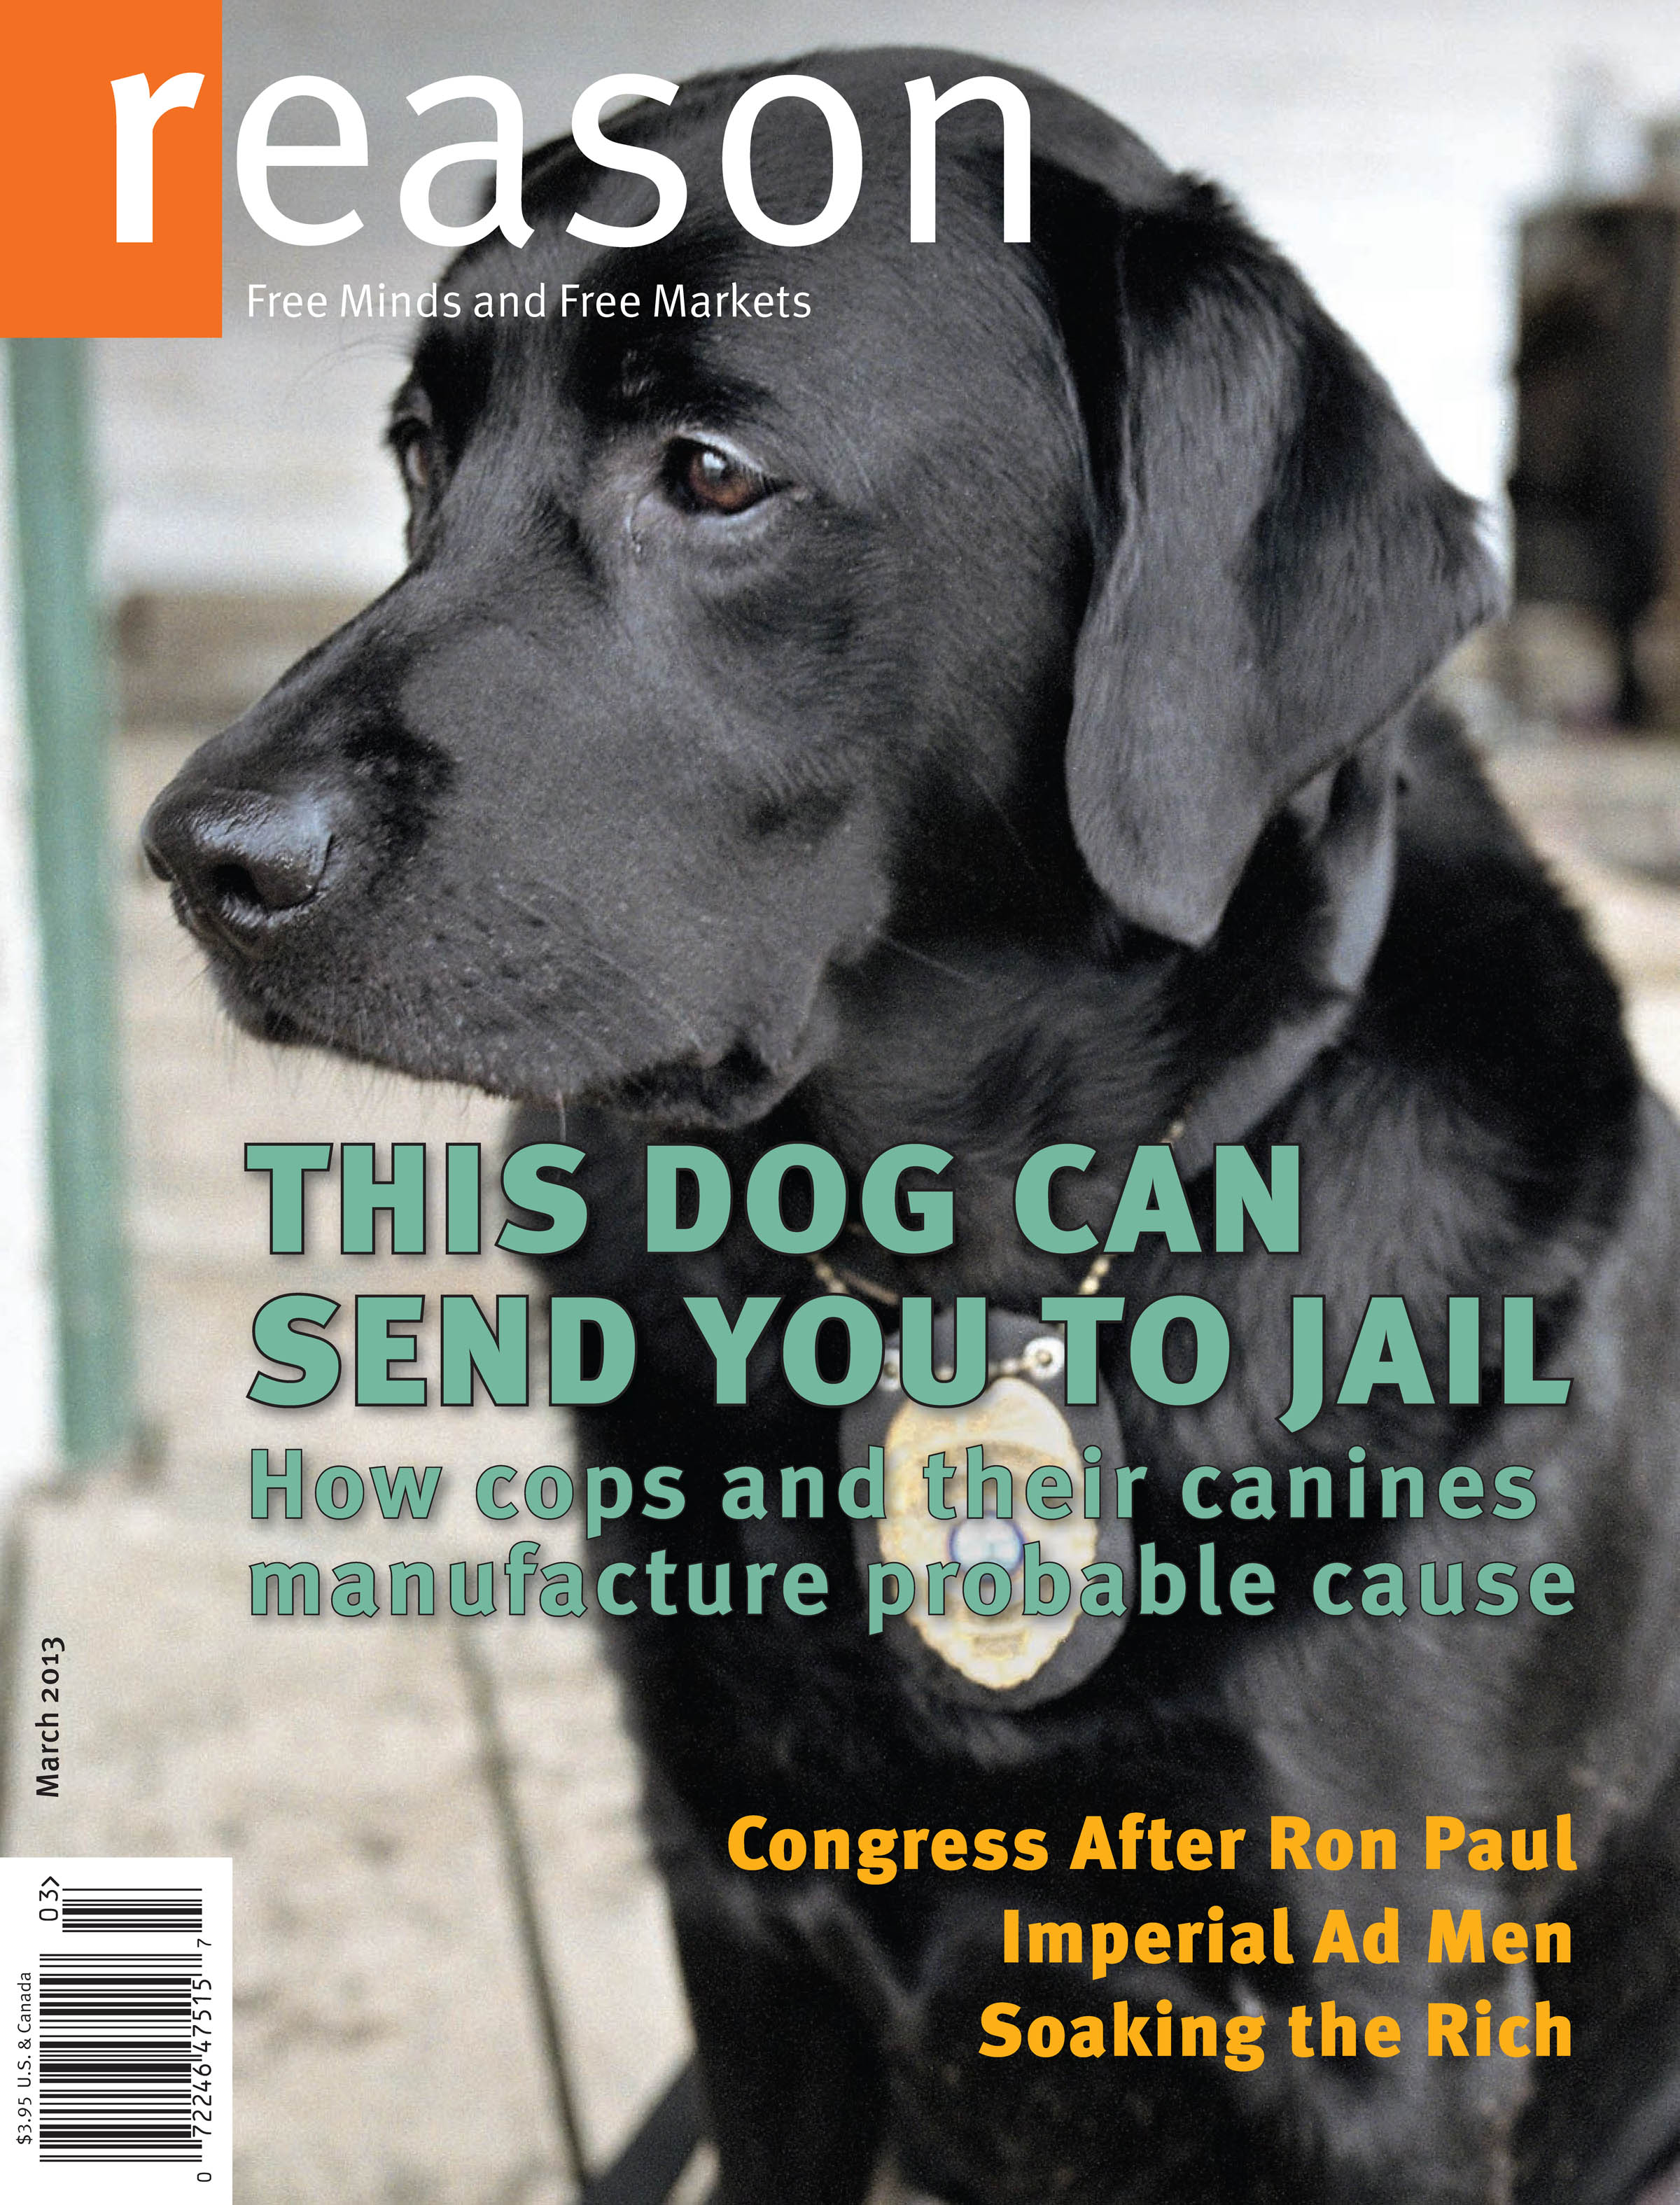 Reason Magazine, March 2013 cover image